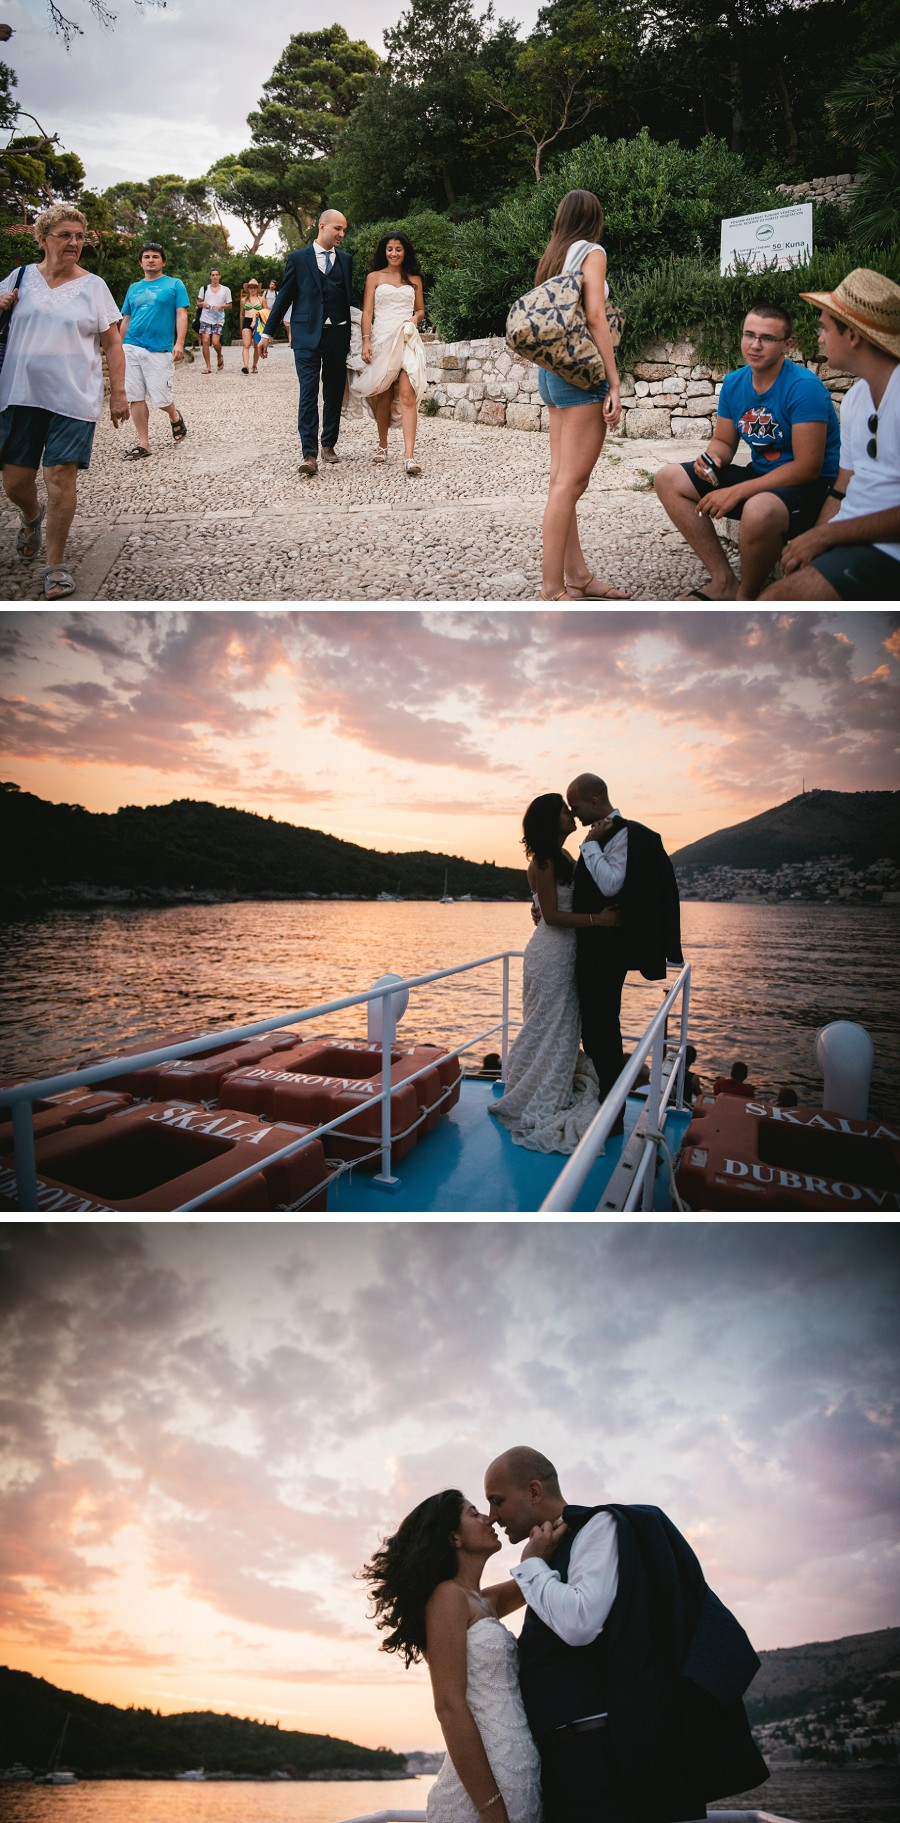 Wedding pictures on a boat at sunset